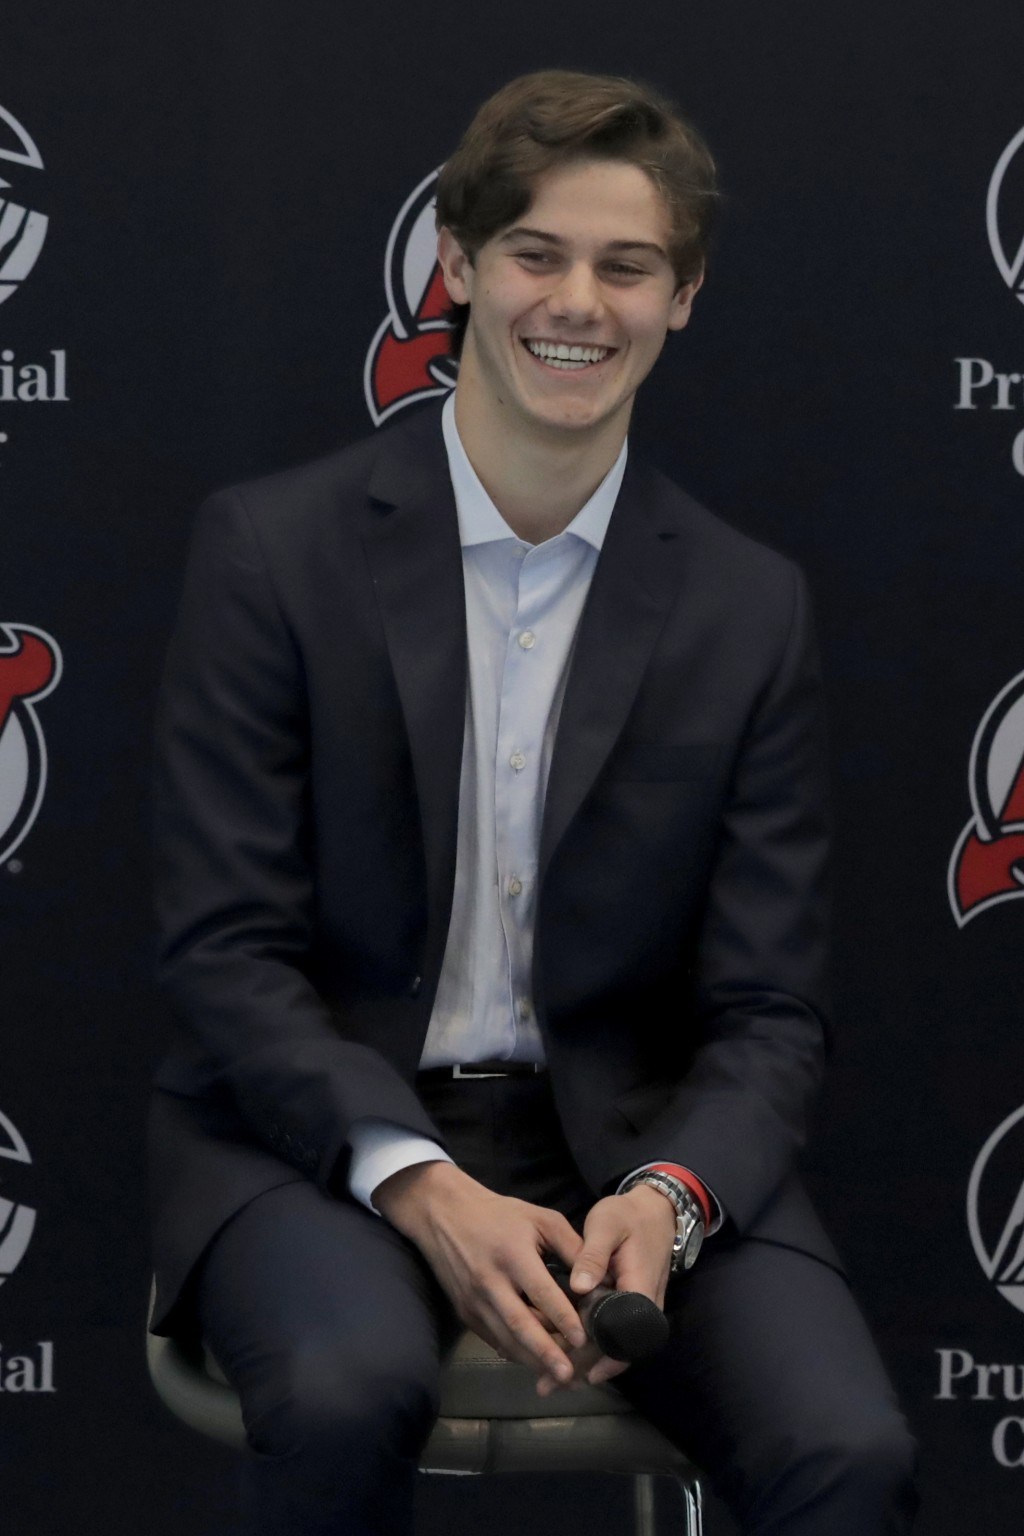 New Jersey Devils forward Jack Hughes, the No. 1 overall pick in the 2019 NHL hockey draft, reacts during a news conference introducing the prospect t...